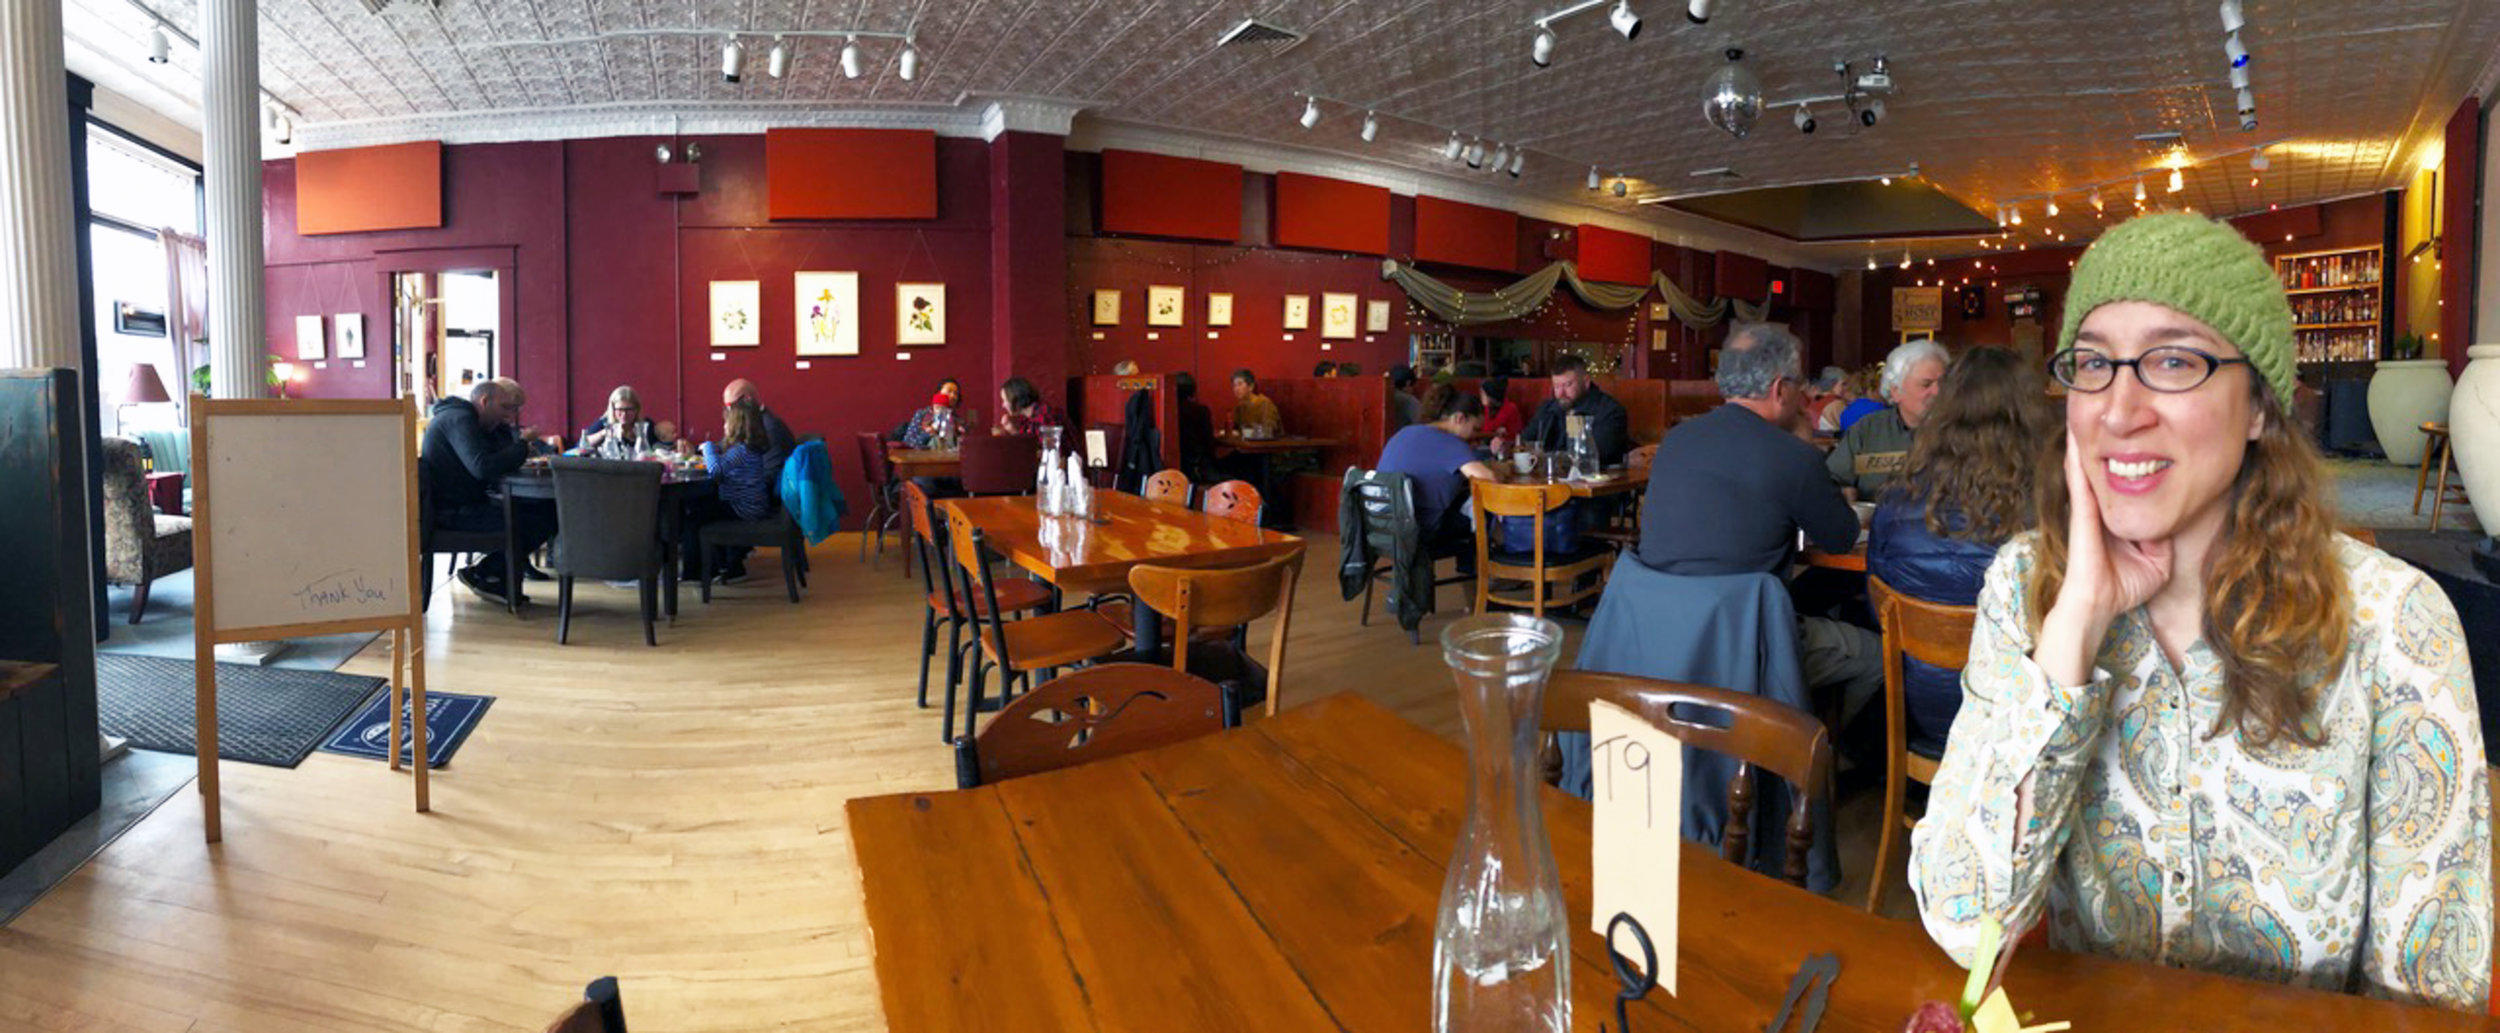 At the Rooted Spoon in Viroqua Wisconsin Enjoying Brunch and a show of my watercolor paintings